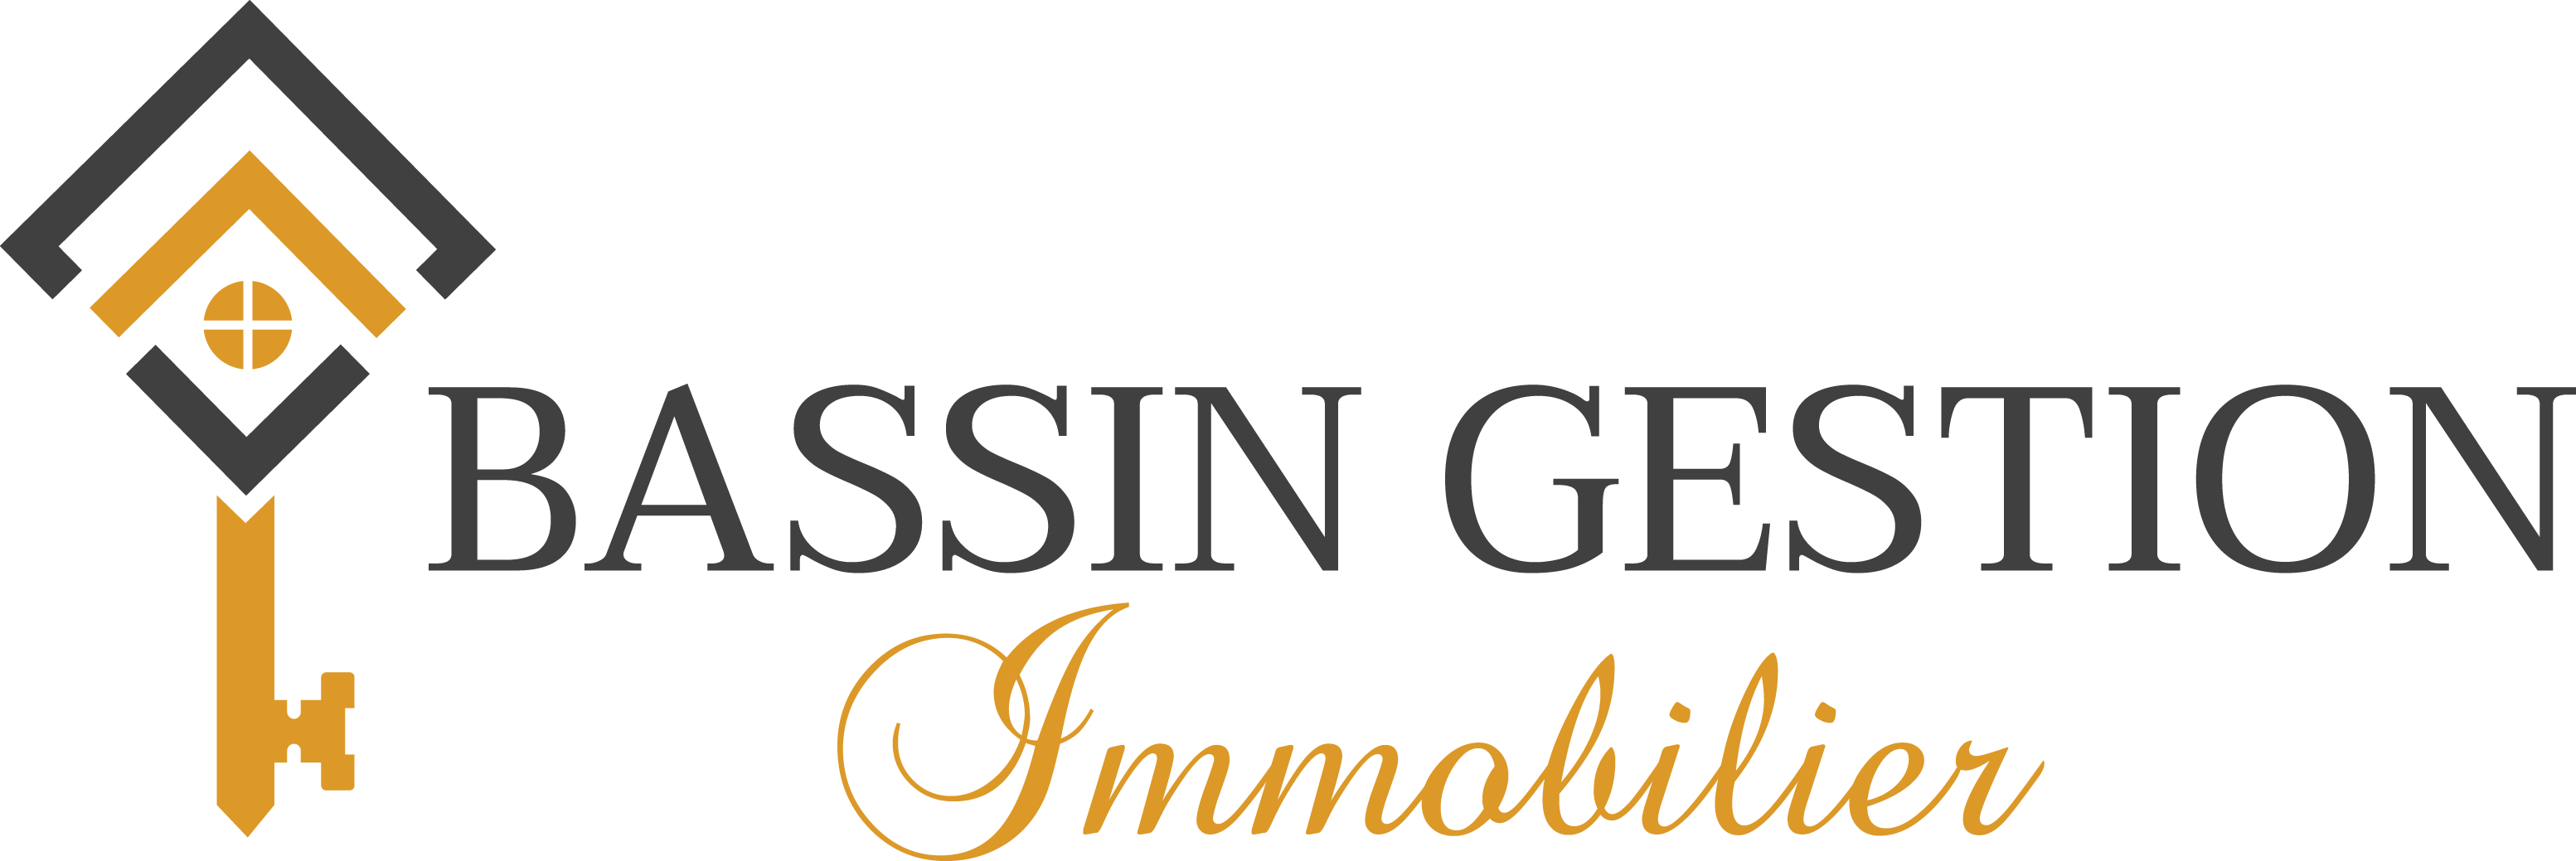 Bassin Gestion Immobilier Agence Immobiliere Bassin D Arcachon